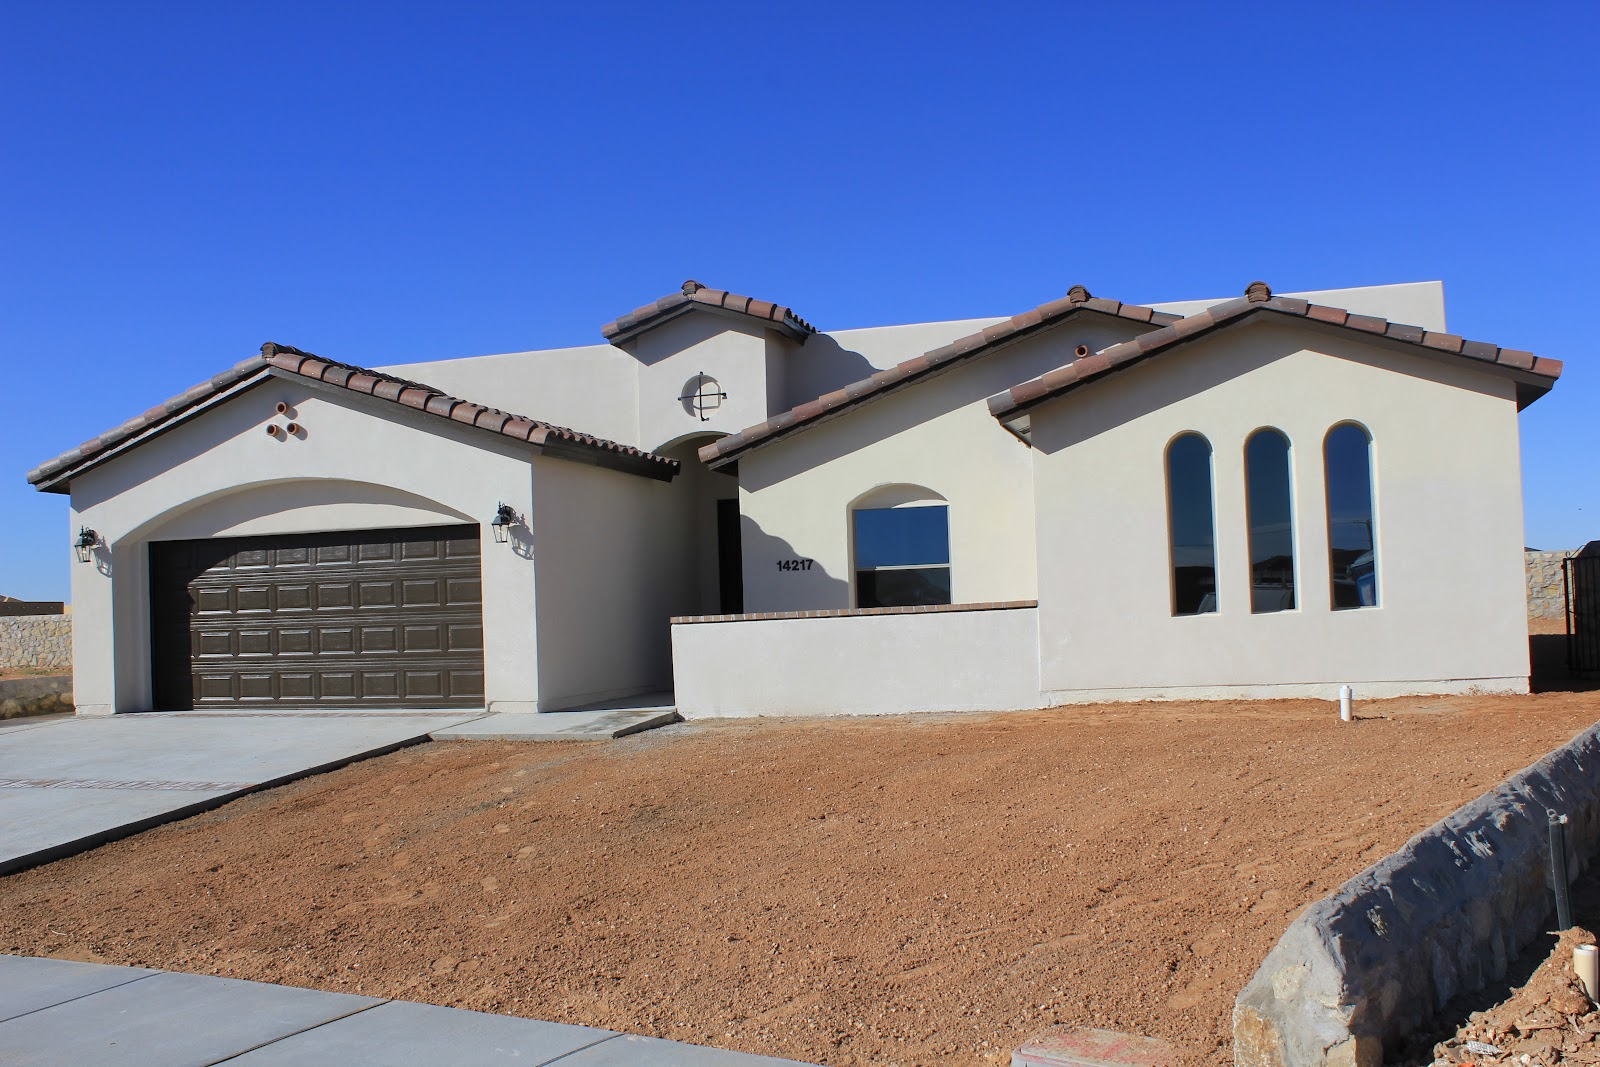 Directions Ne On Zaragosa Rd Right Rich Beem Left Charles Foster Follow The Signs To Our Model Home Posted By Palo Verde Homes